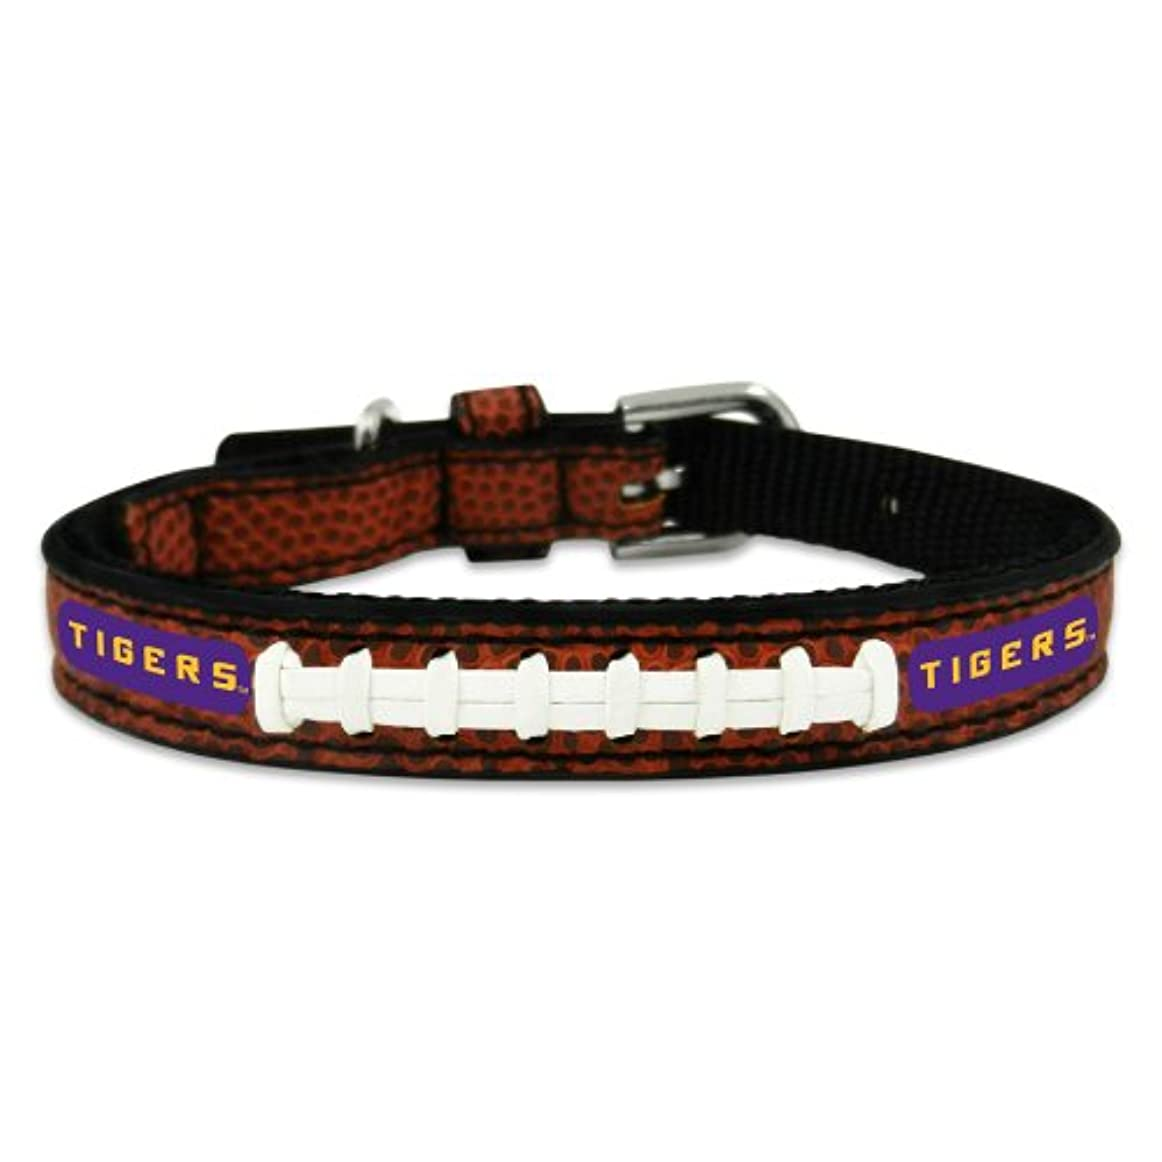 エイリアン挨拶するほのめかすLSU Tigers Classic Leather Toy Football Collar